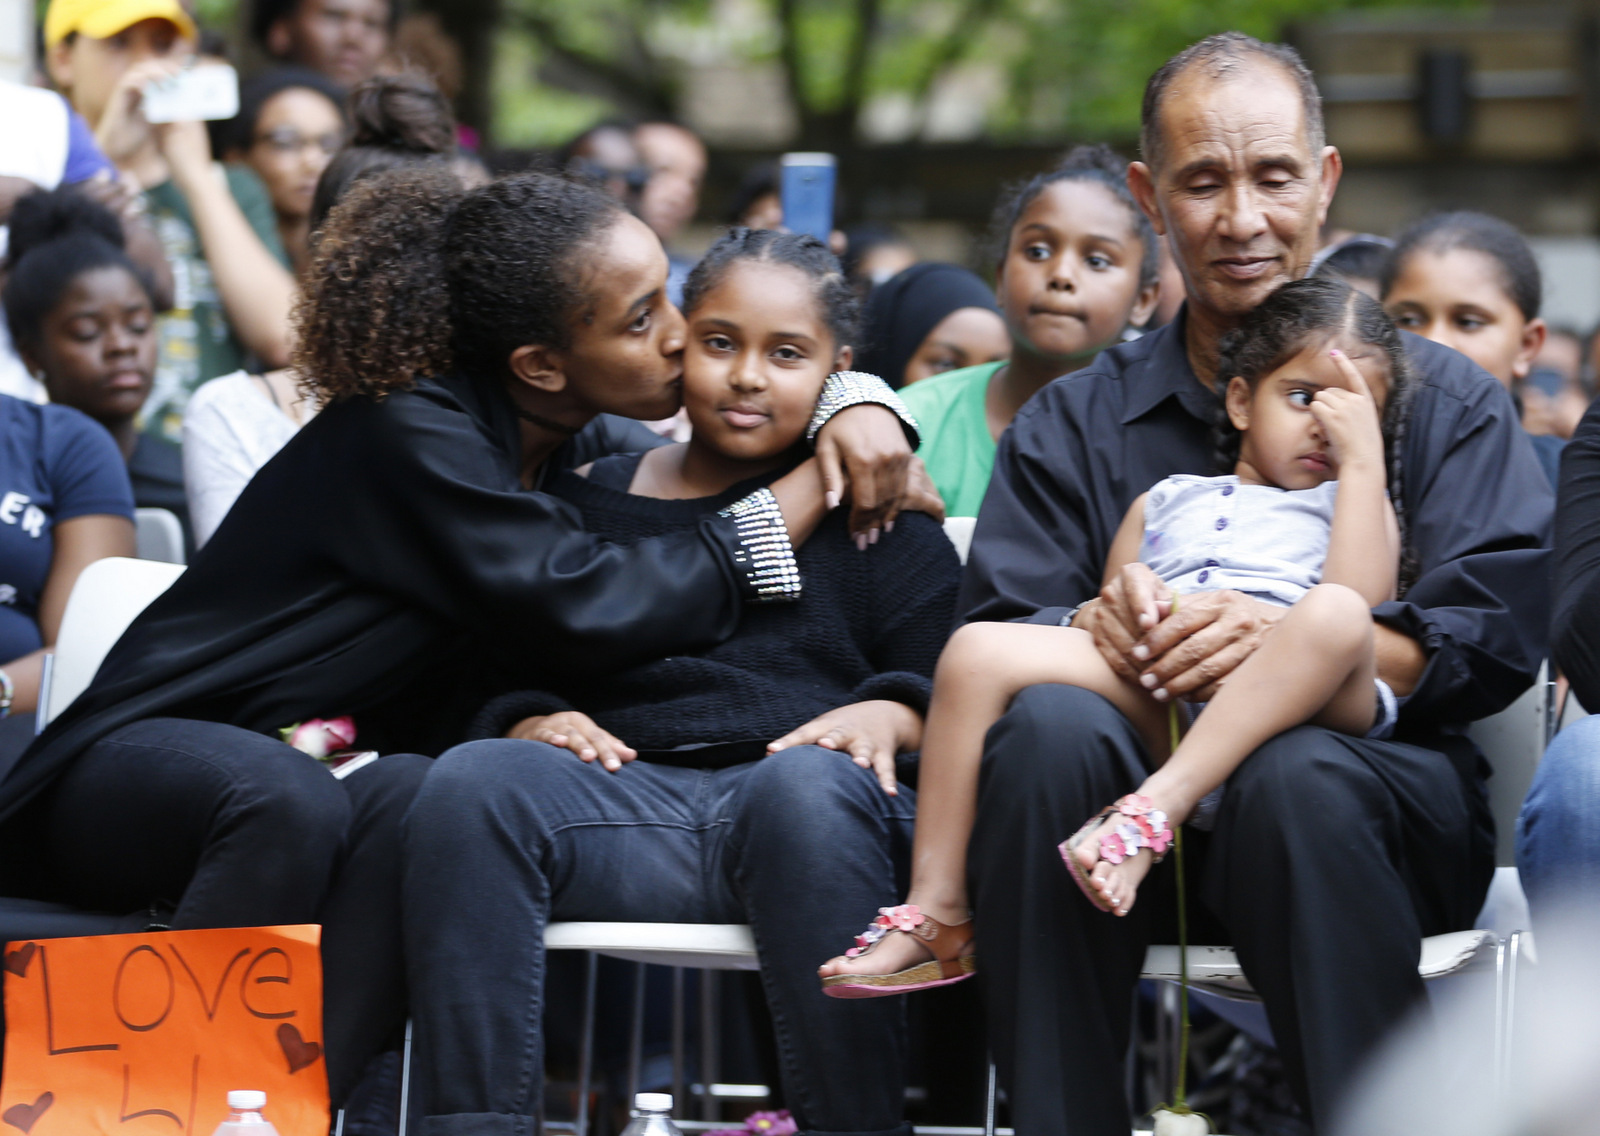 Mahmoud Hassanen Aboras father of Nabra Hassanen, who was killed over the weekend, sits with family as he listens to speakers during a vigil in honor of Nabra Wednesday, June 21, 2017, in Reston, Va. (AP/Steve Helber)